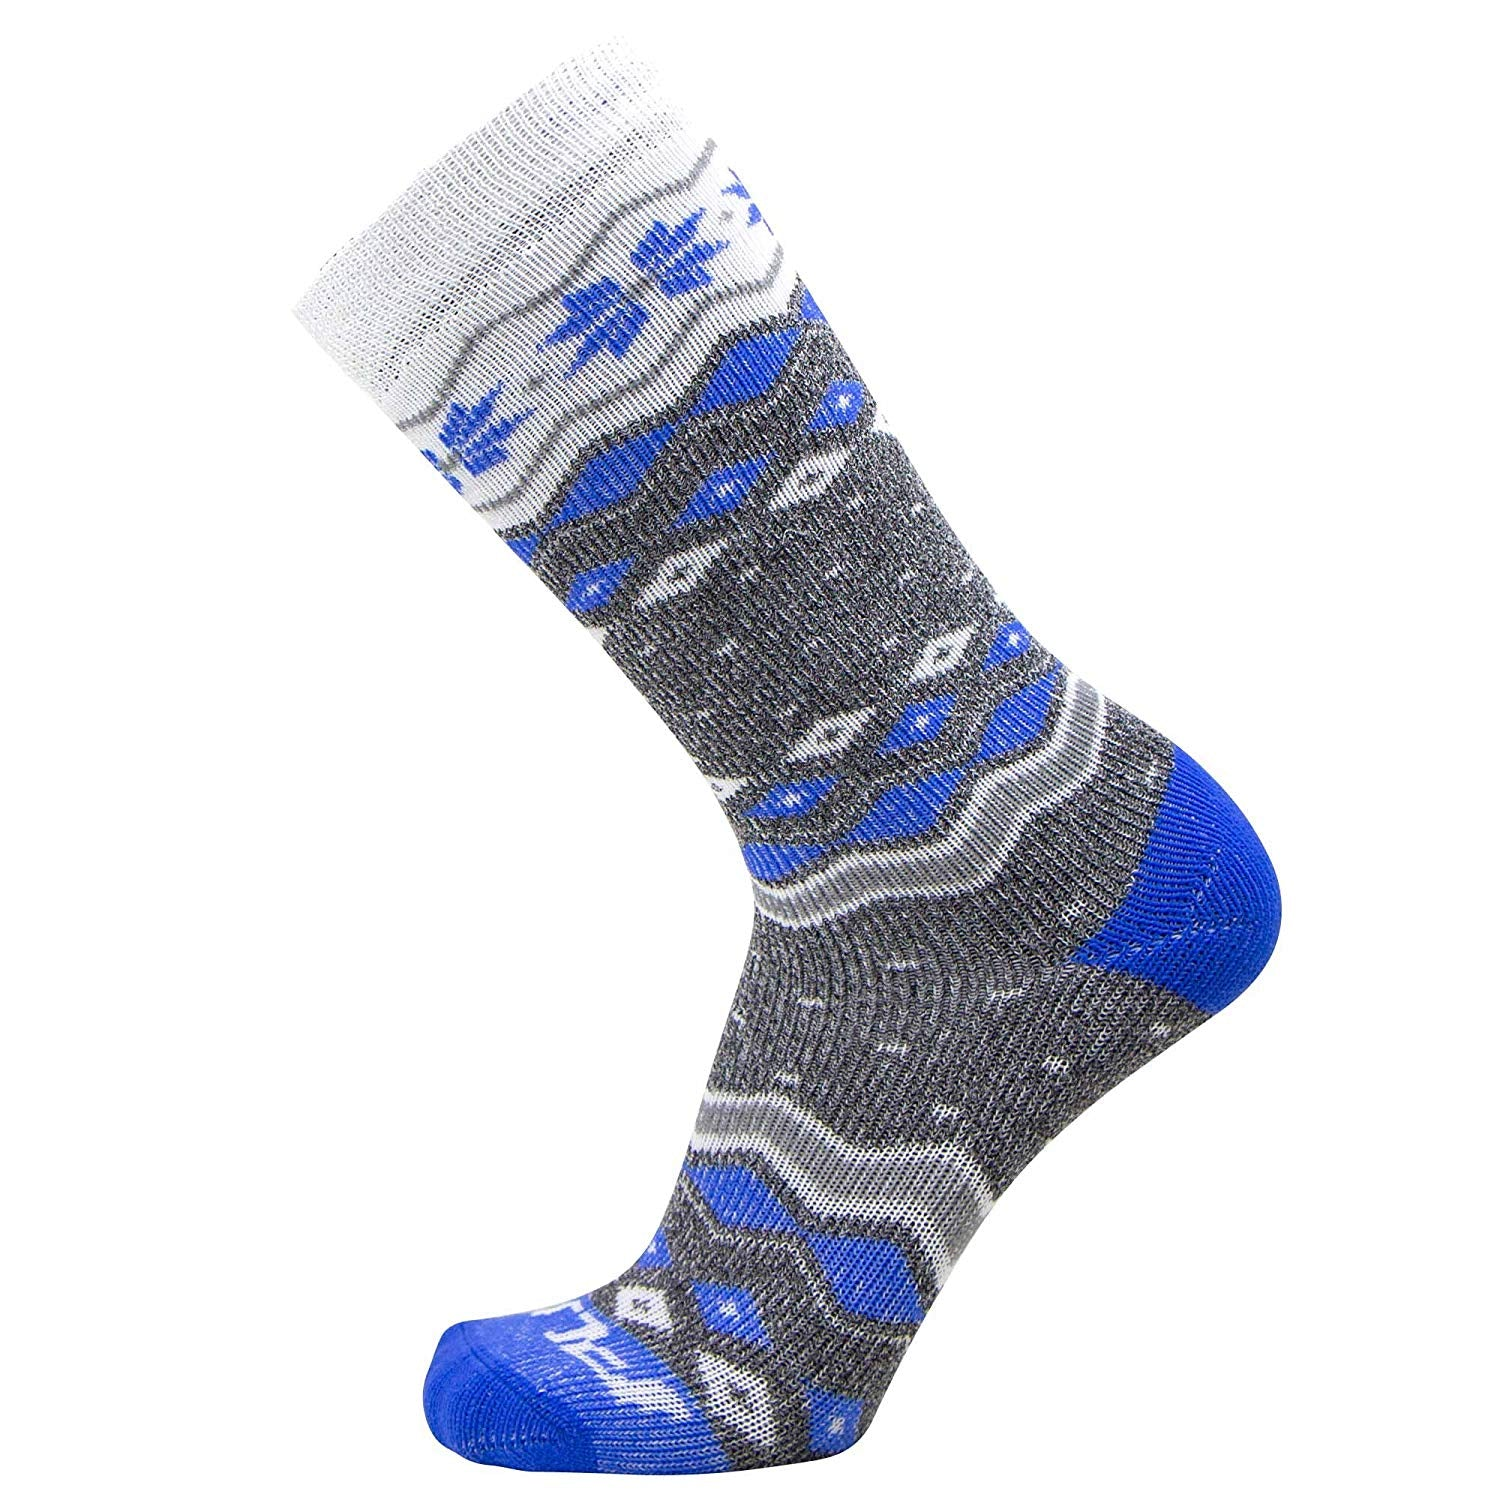 Snowflake Kids Ski Socks